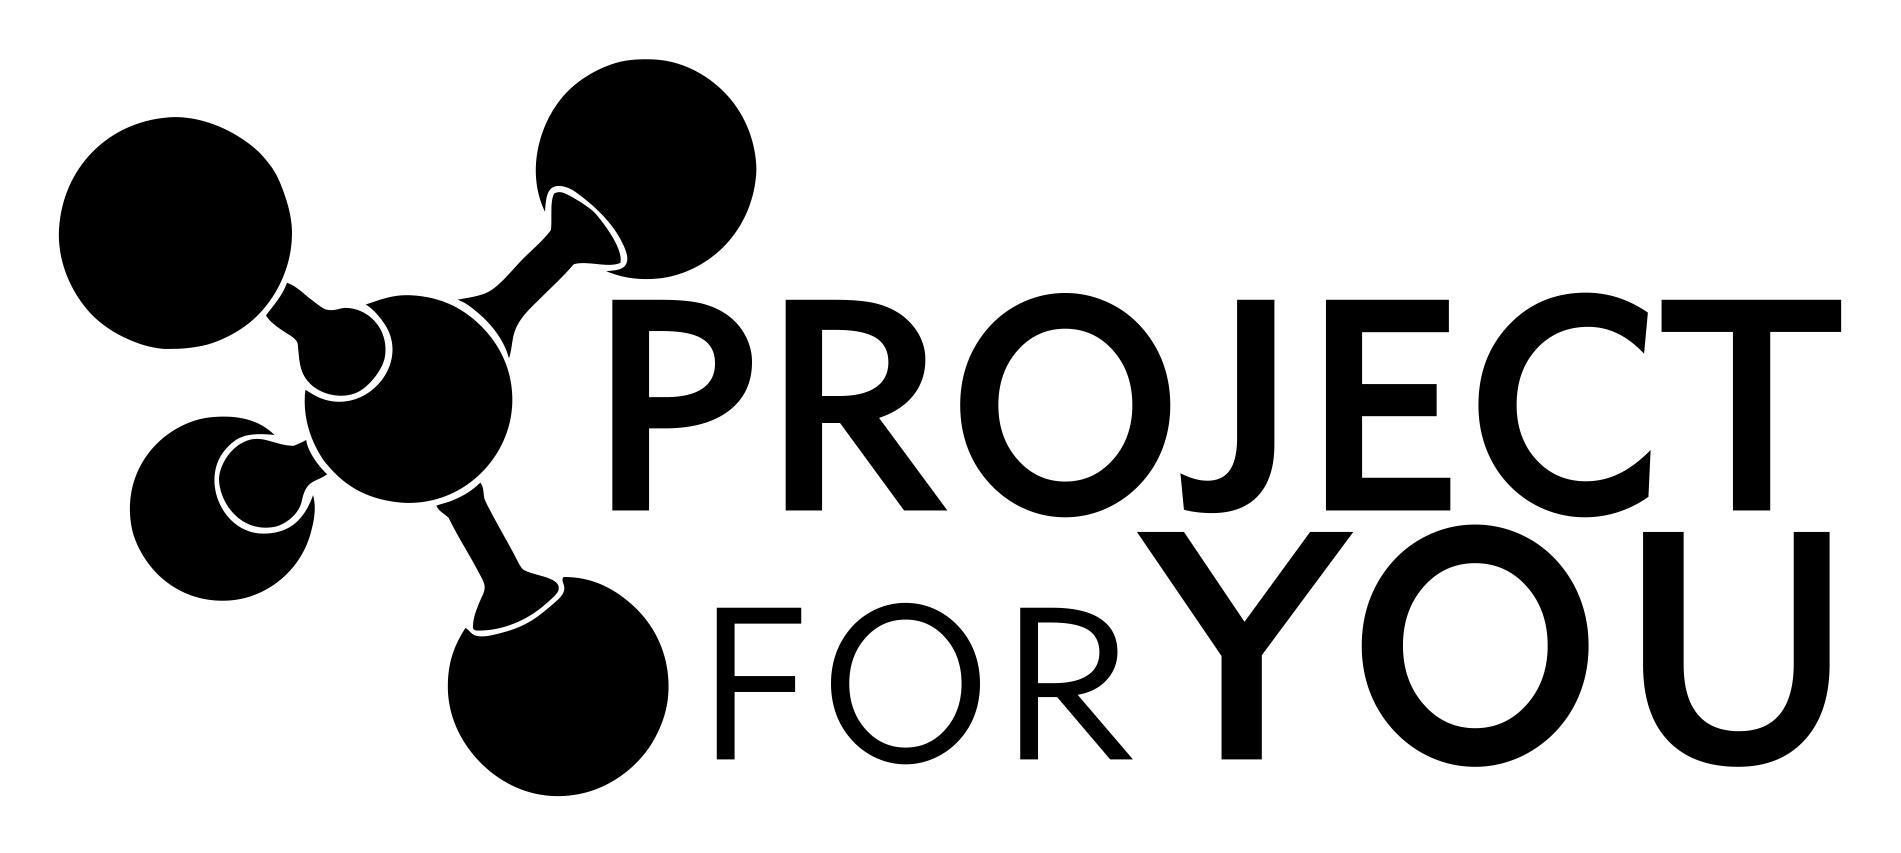 LOGO PROJECT FOR YOU - FUNDO TRANSPARENTE LETRA PRETA